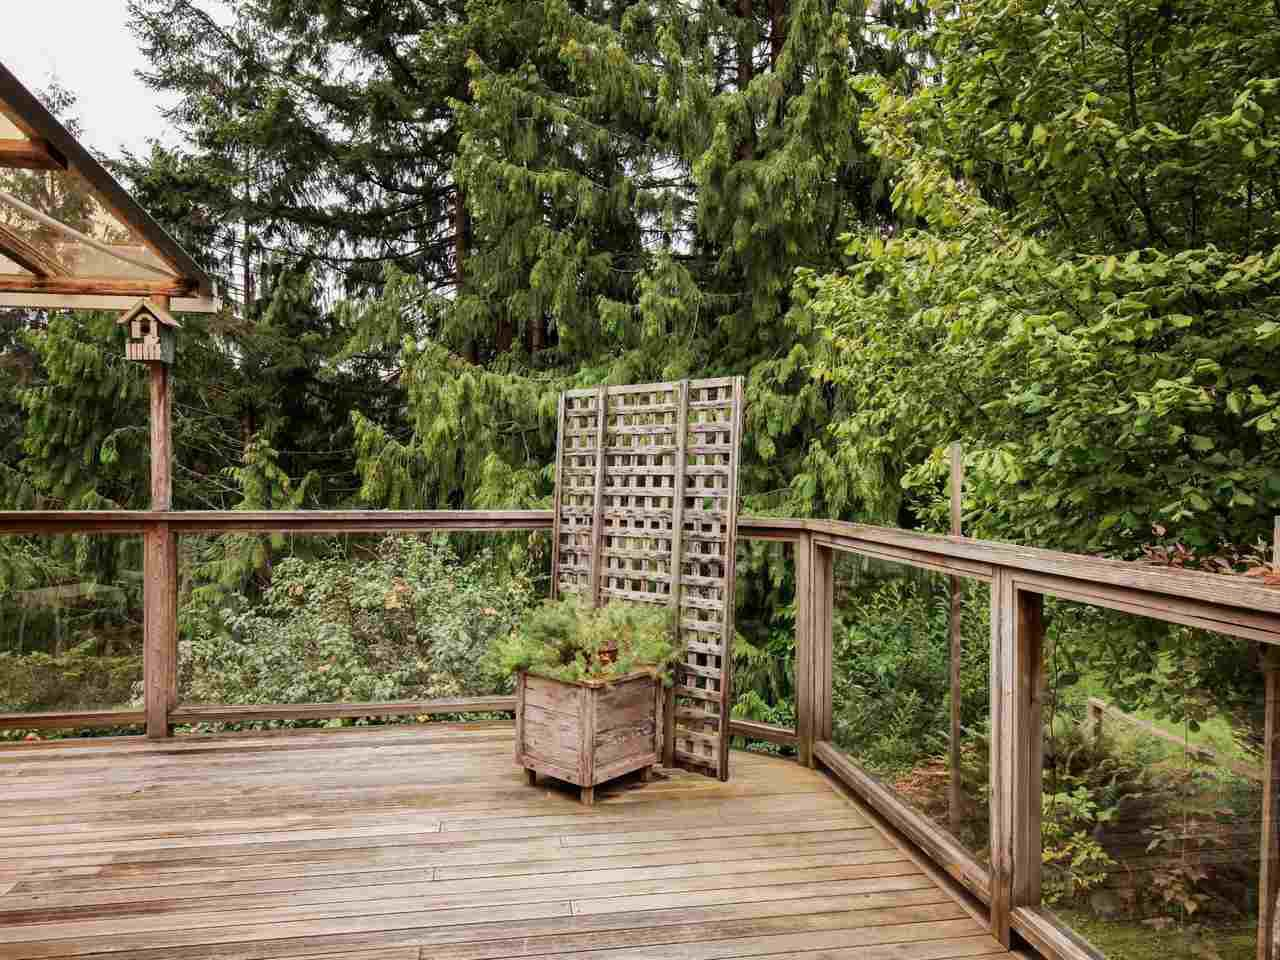 Photo 15: Photos: 4120 LYNN VALLEY ROAD in North Vancouver: Lynn Valley House for sale : MLS®# R2100168